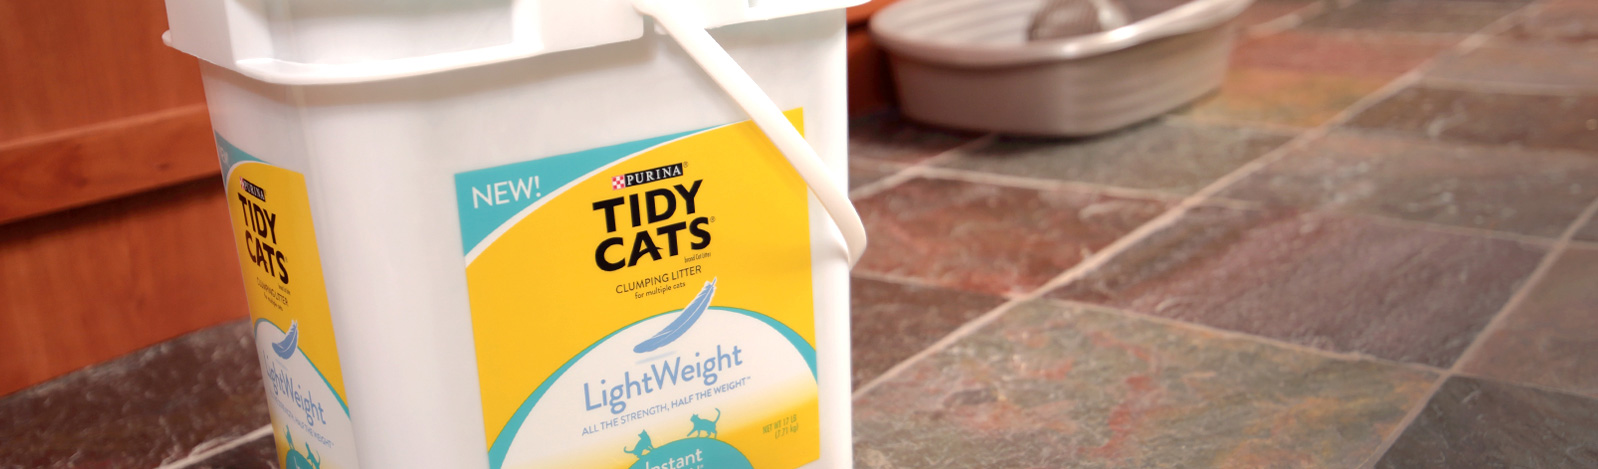 Pet product packaging for Tidy Cats by Inland